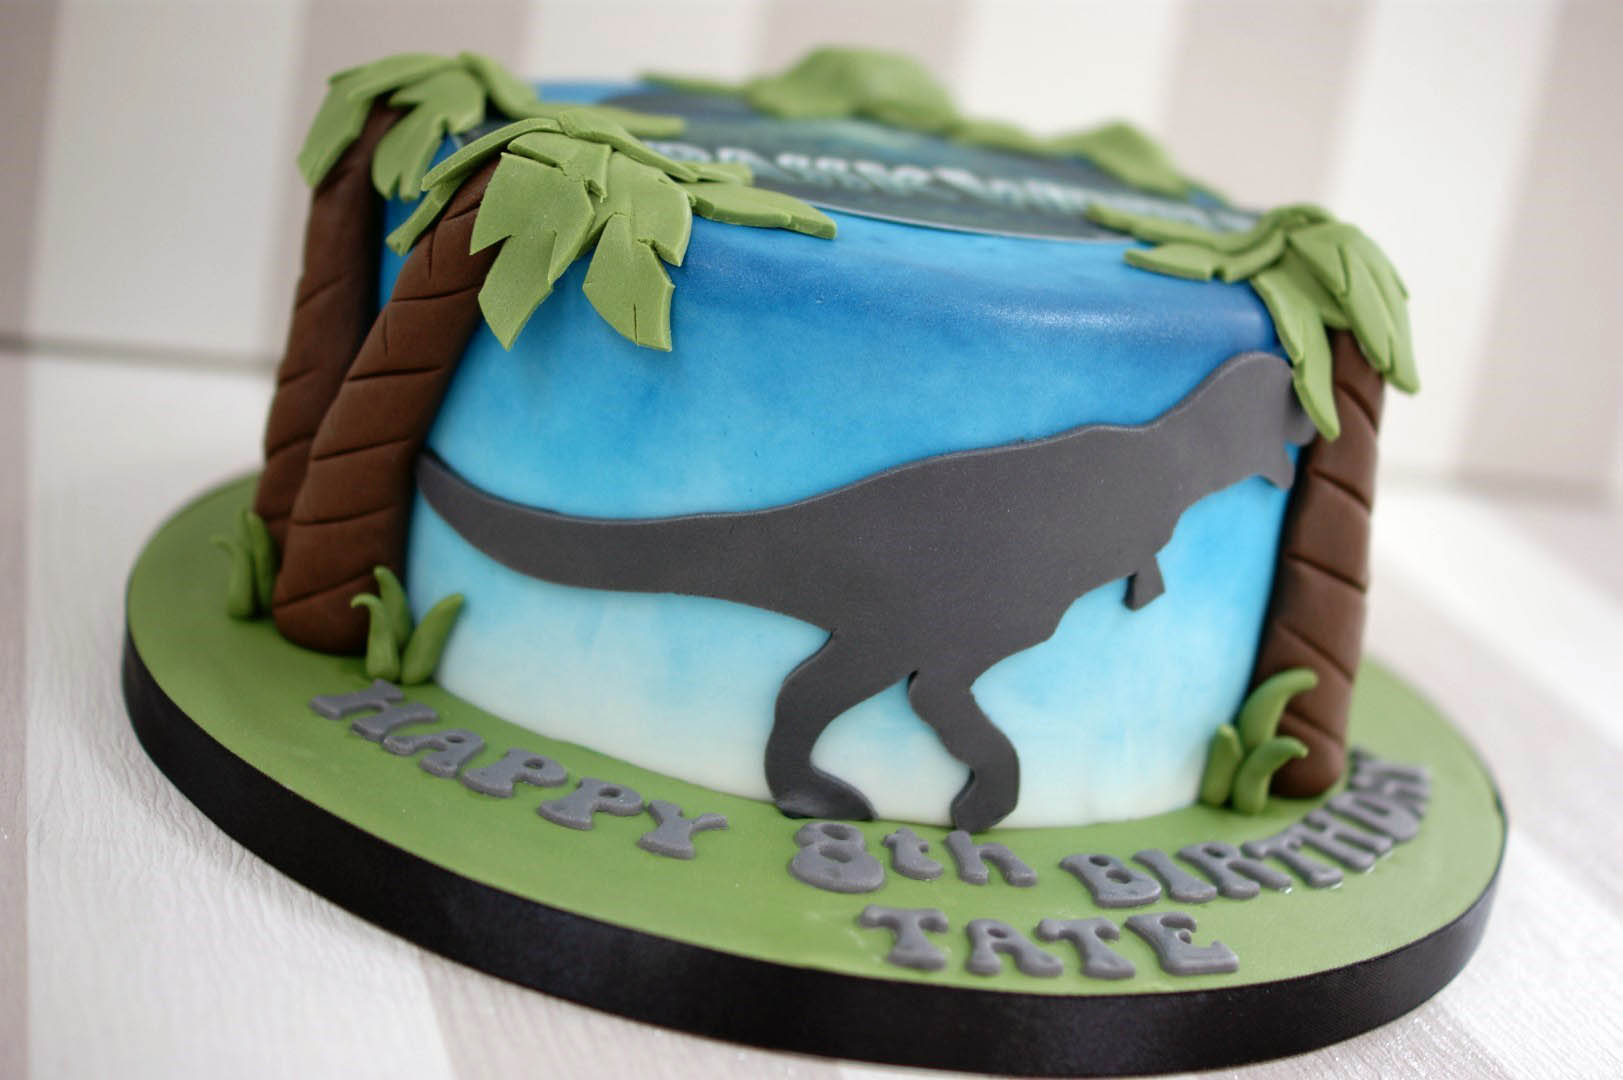 Jurassic World 8th Birthday Cake - Bakealous